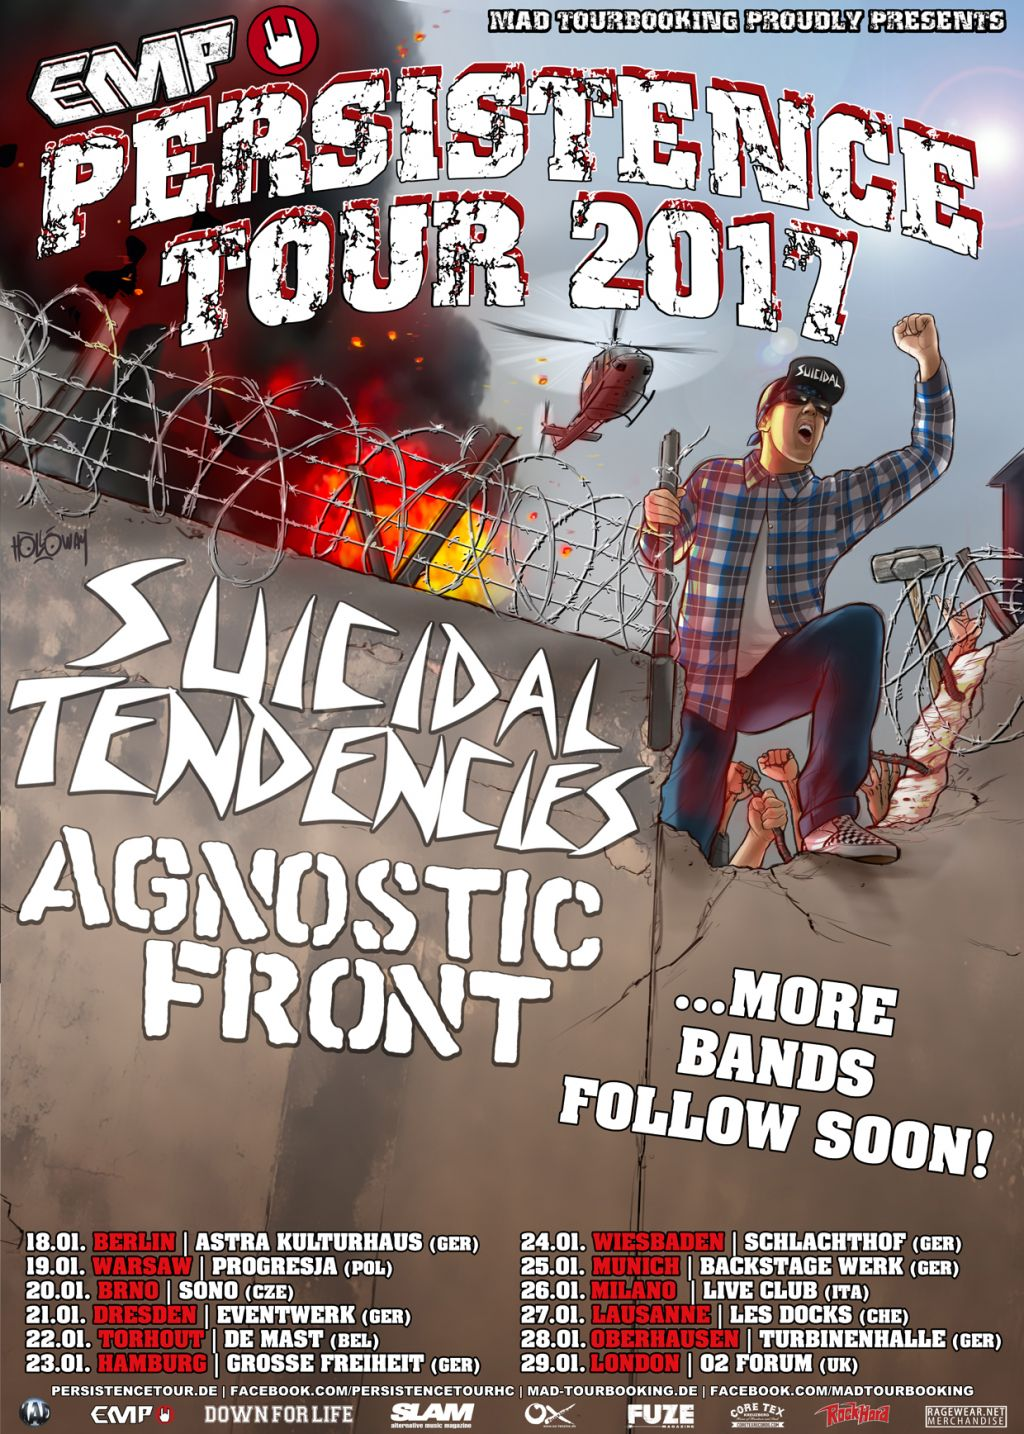 ST TO HEADLINE PERSISTENCE TOUR FOR THE THIRD TIME!